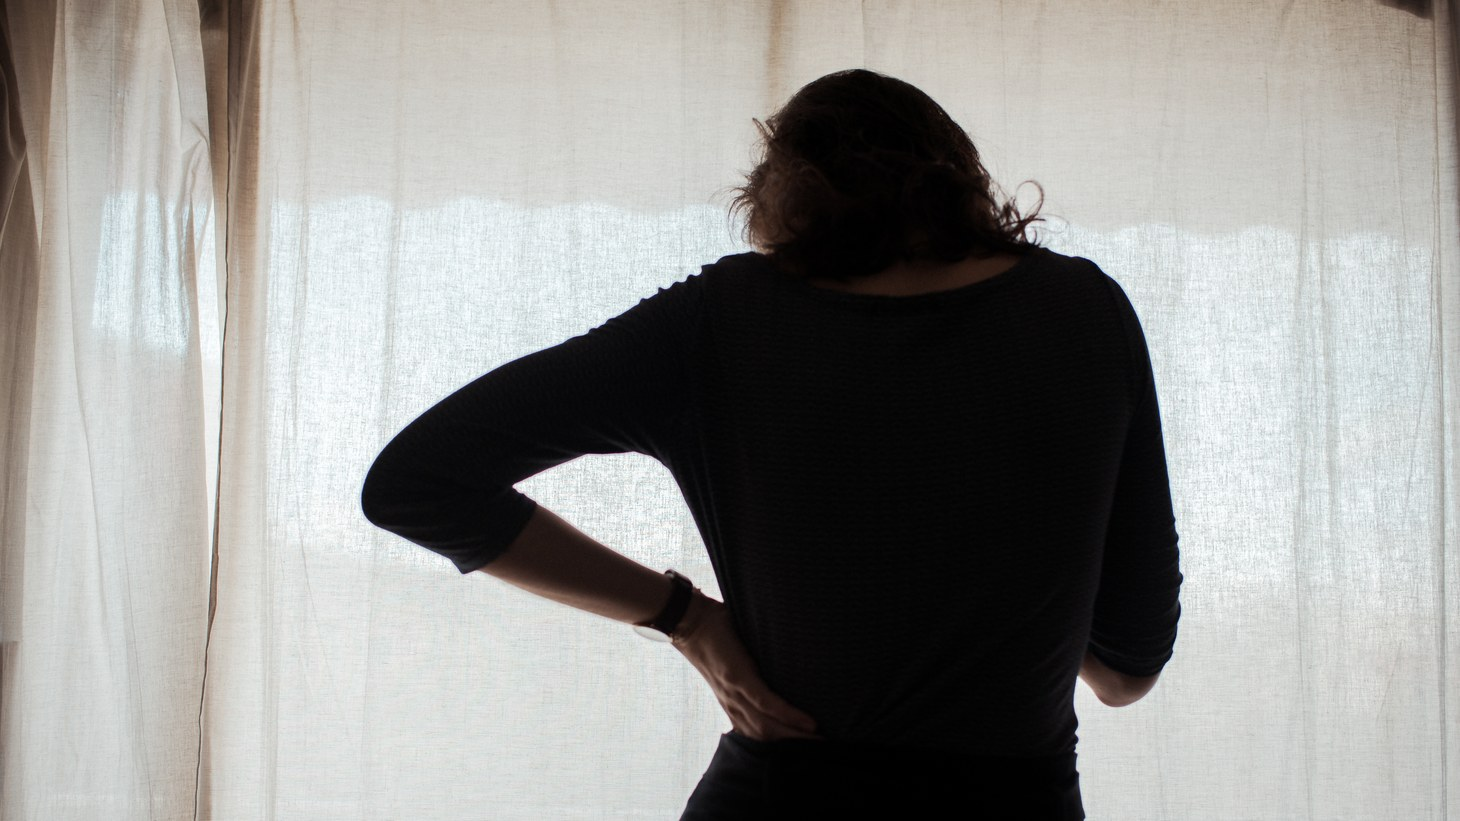 An illustration of a woman in front of a curtain, January 18, 2021, Paris, France. One third of COVID-19 survivors may develop a severe mental health condition within six month of their initial diagnosis, according to Oxford University researchers.